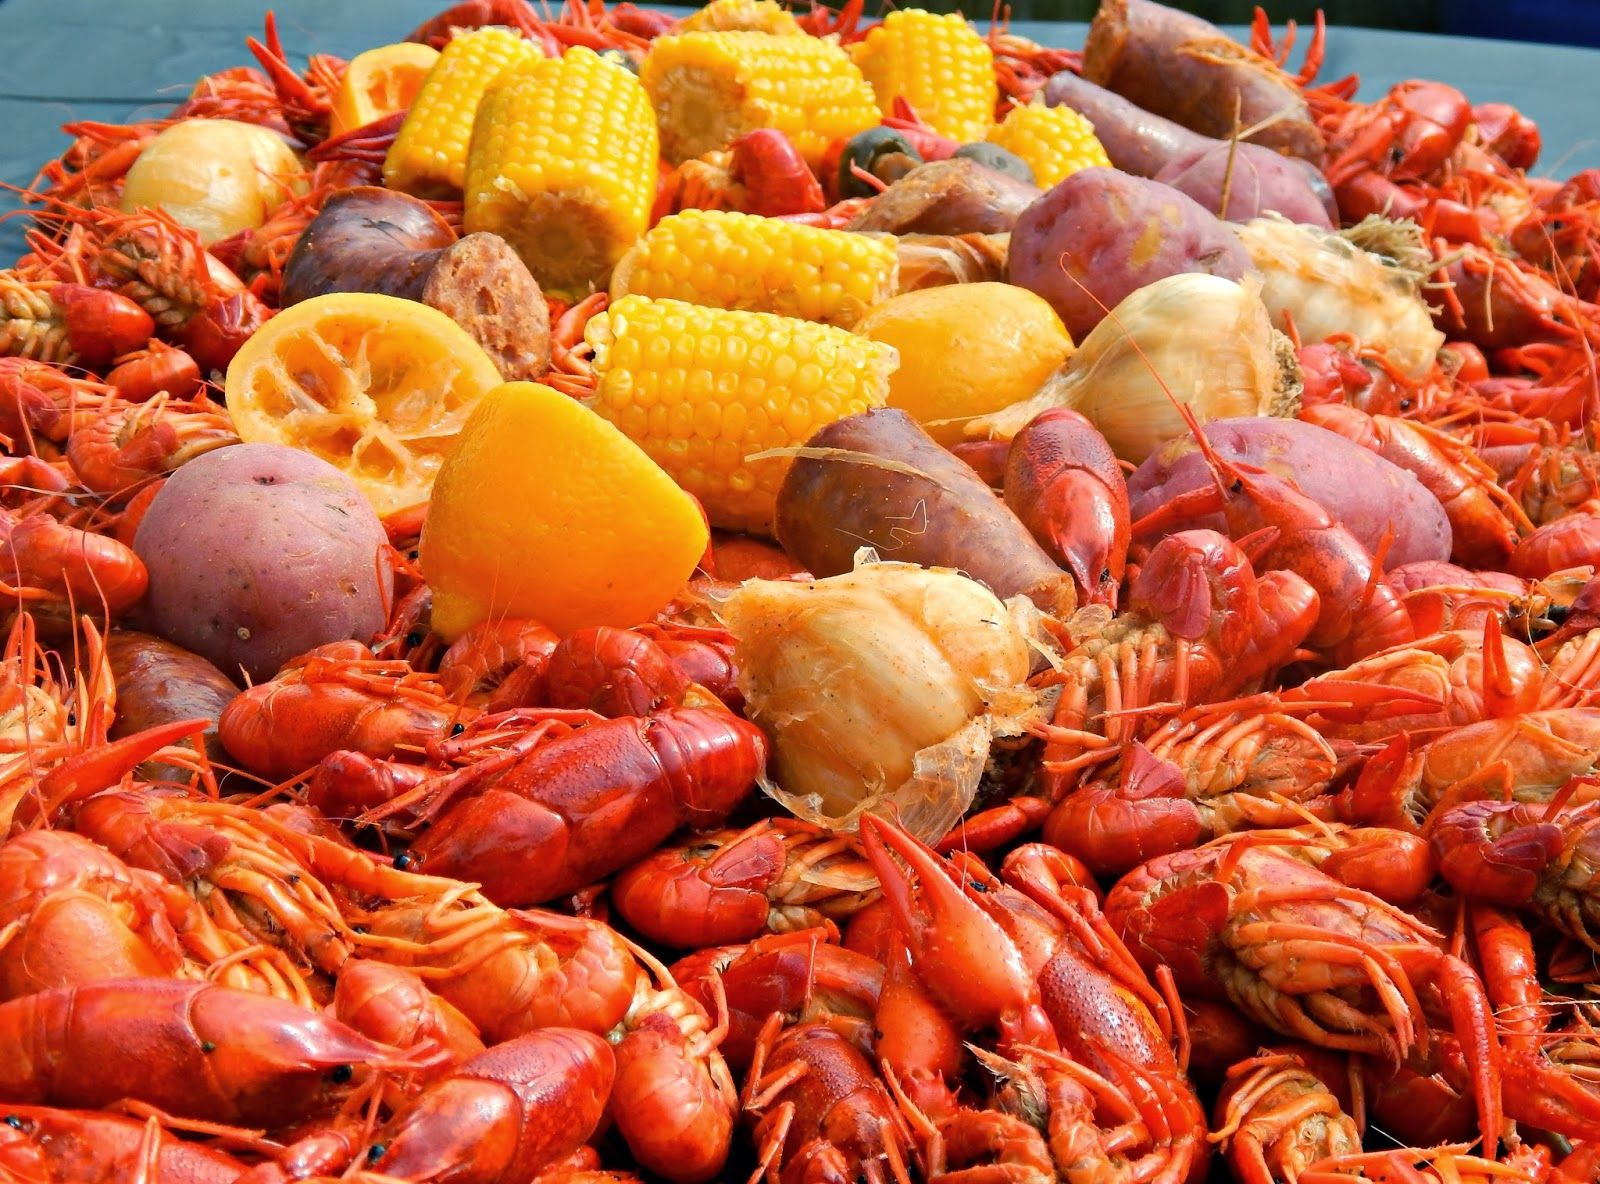 Directions To Cook The Best Boiled Louisiana Crawfish This Recipe Is A Favorite Among Many Fa Crawfish Boil Recipe Louisiana Crawfish Boil Recipe Boiled Food